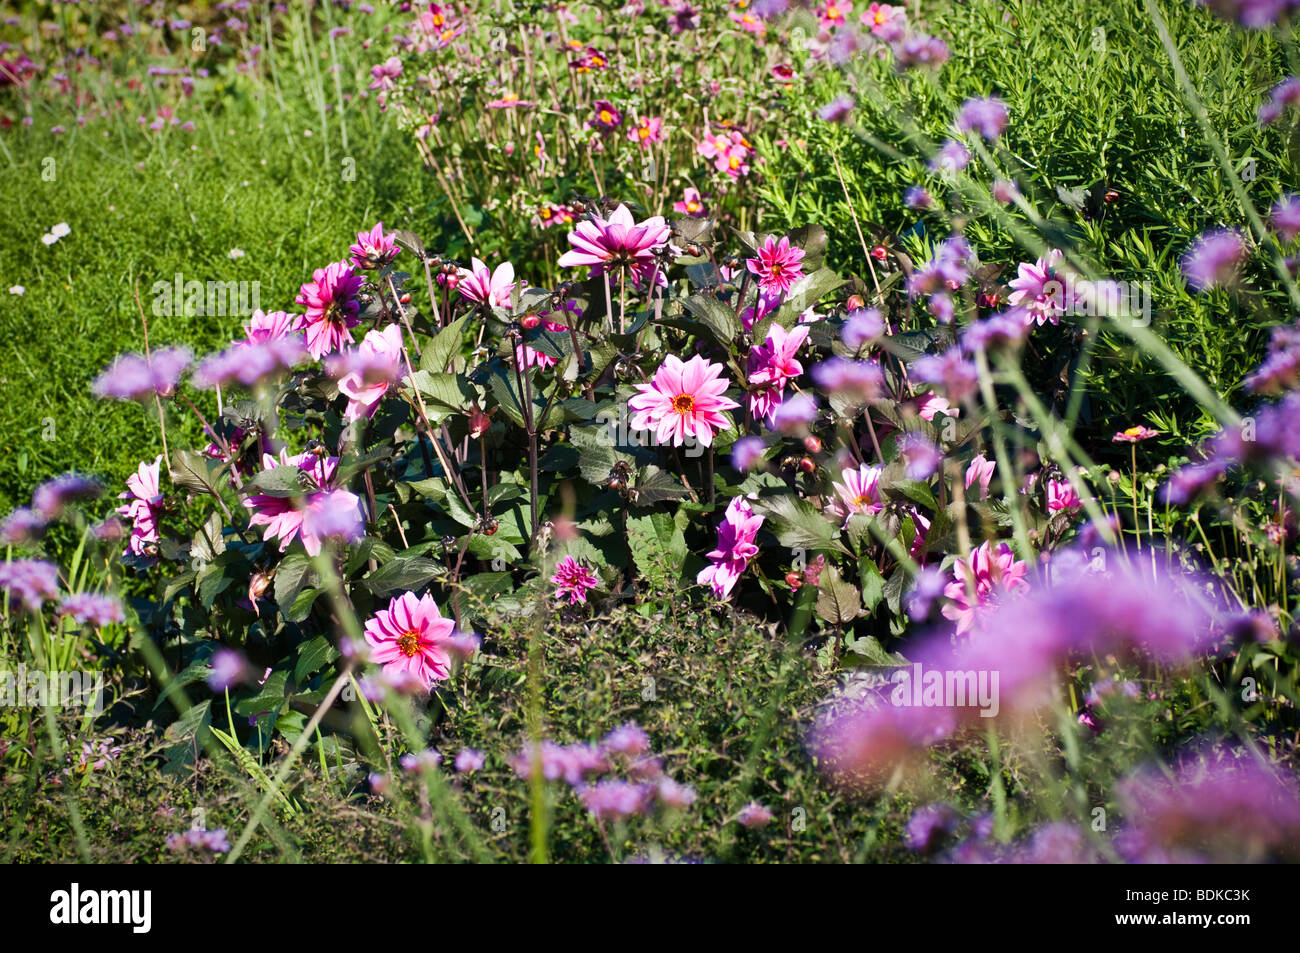 Dahlia 'Fascination' in garden border, summer UK, with Verbena bonariensis in foreground - Stock Image